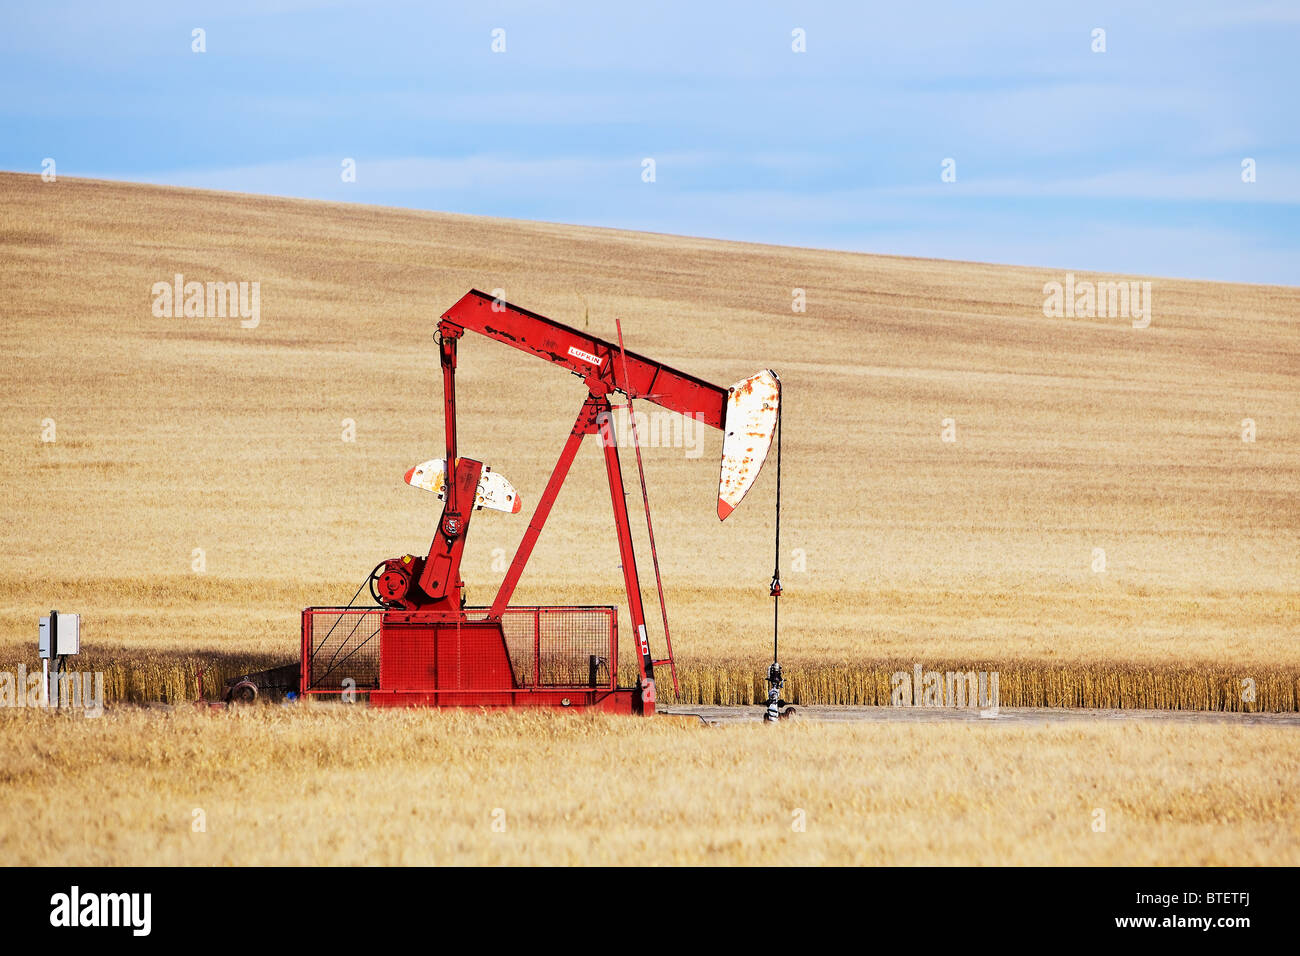 Oil well pump jack, near Swift Current, Saskatchewan, Canada. - Stock Image